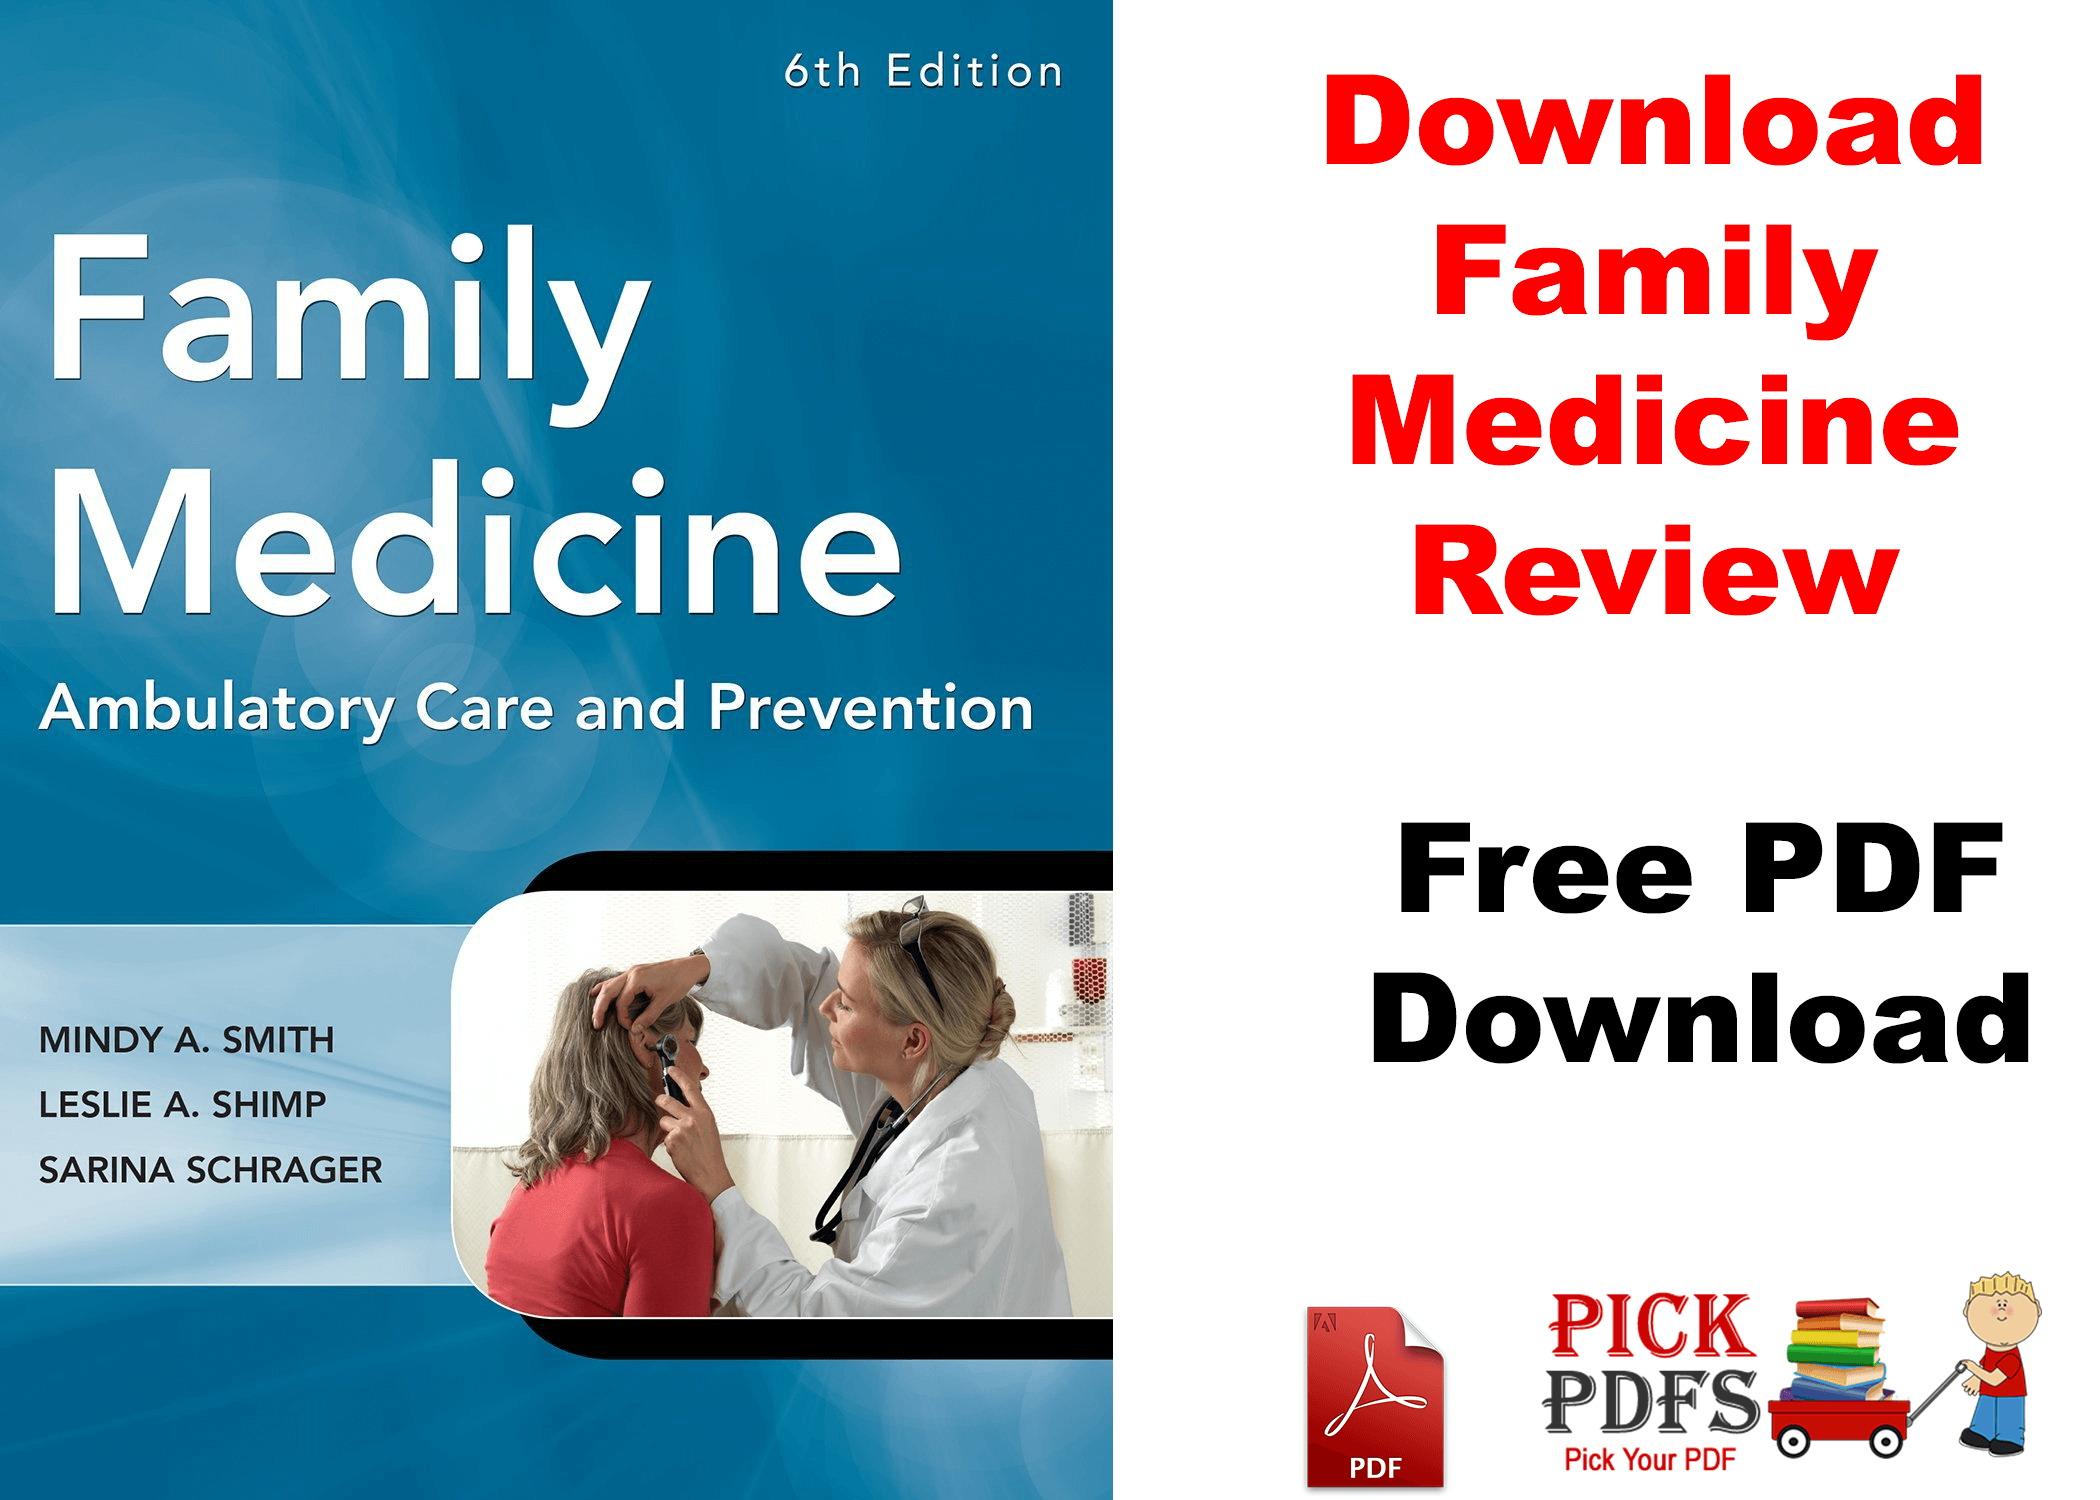 https://pickpdfs.com/family-medicine-ambulatory-care-and-prevention-free-pdf-book-download/